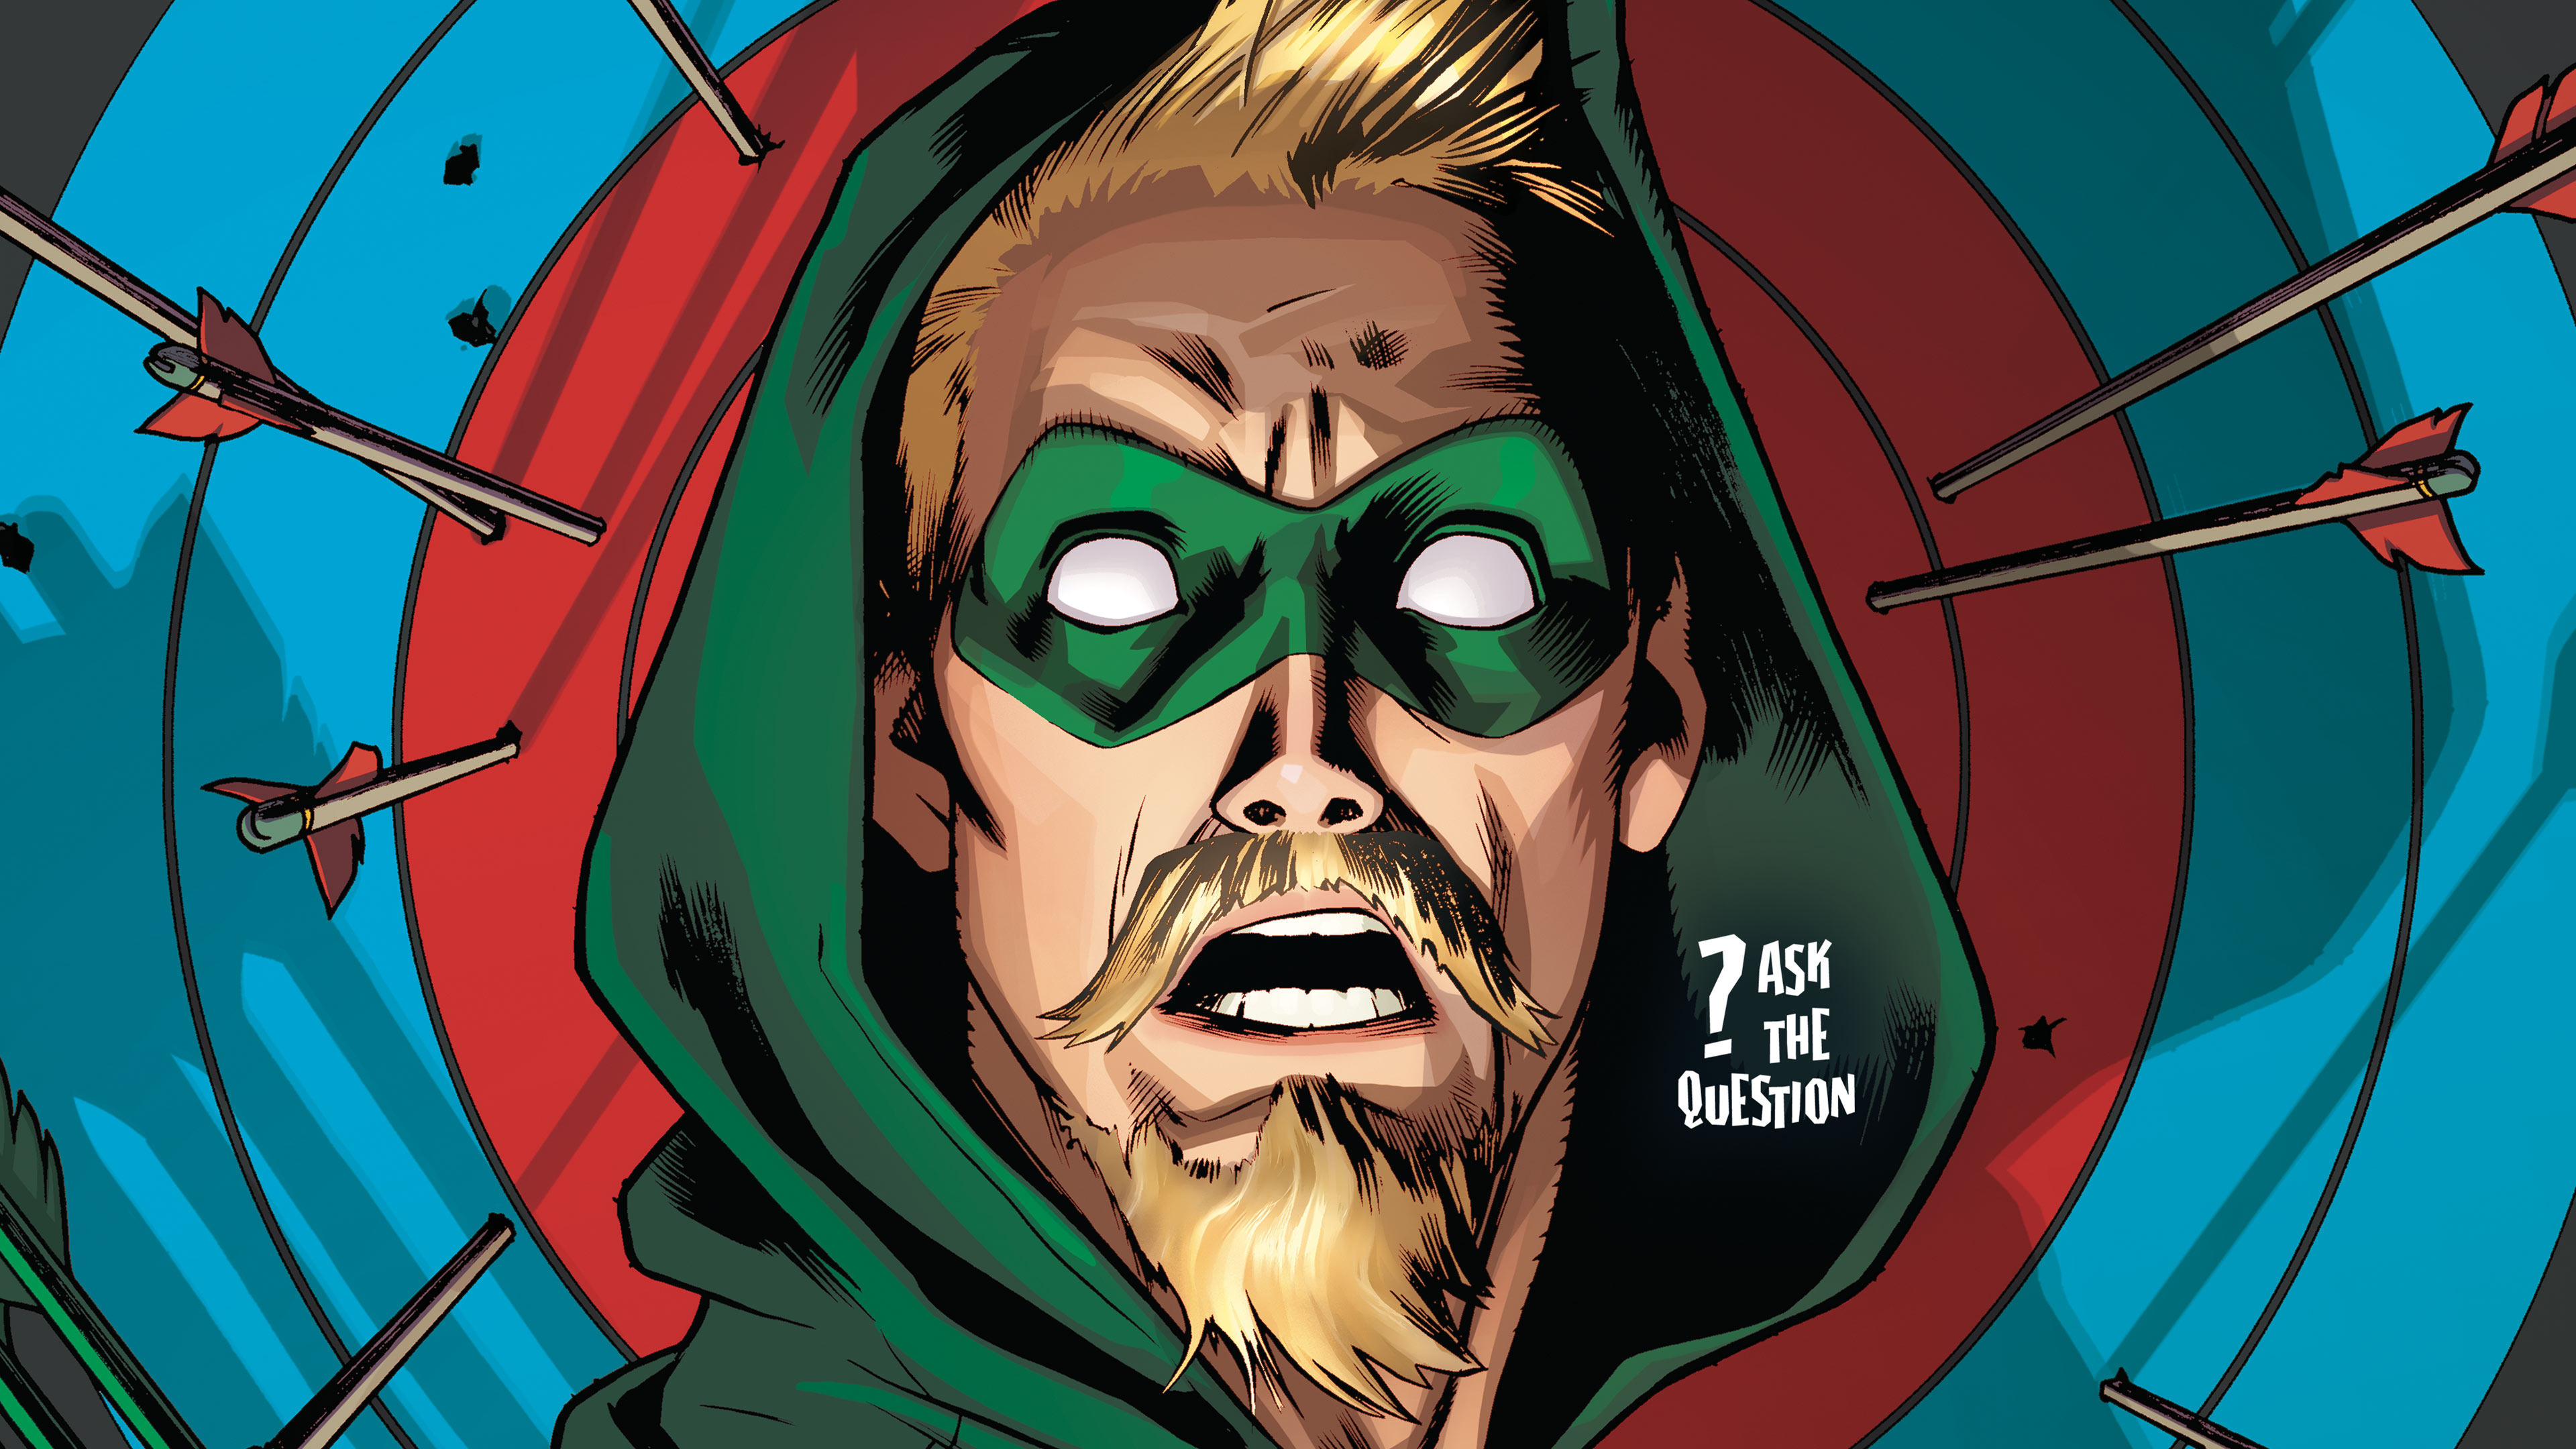 atq-greenarrow-news-hero-190911-v1.jpg